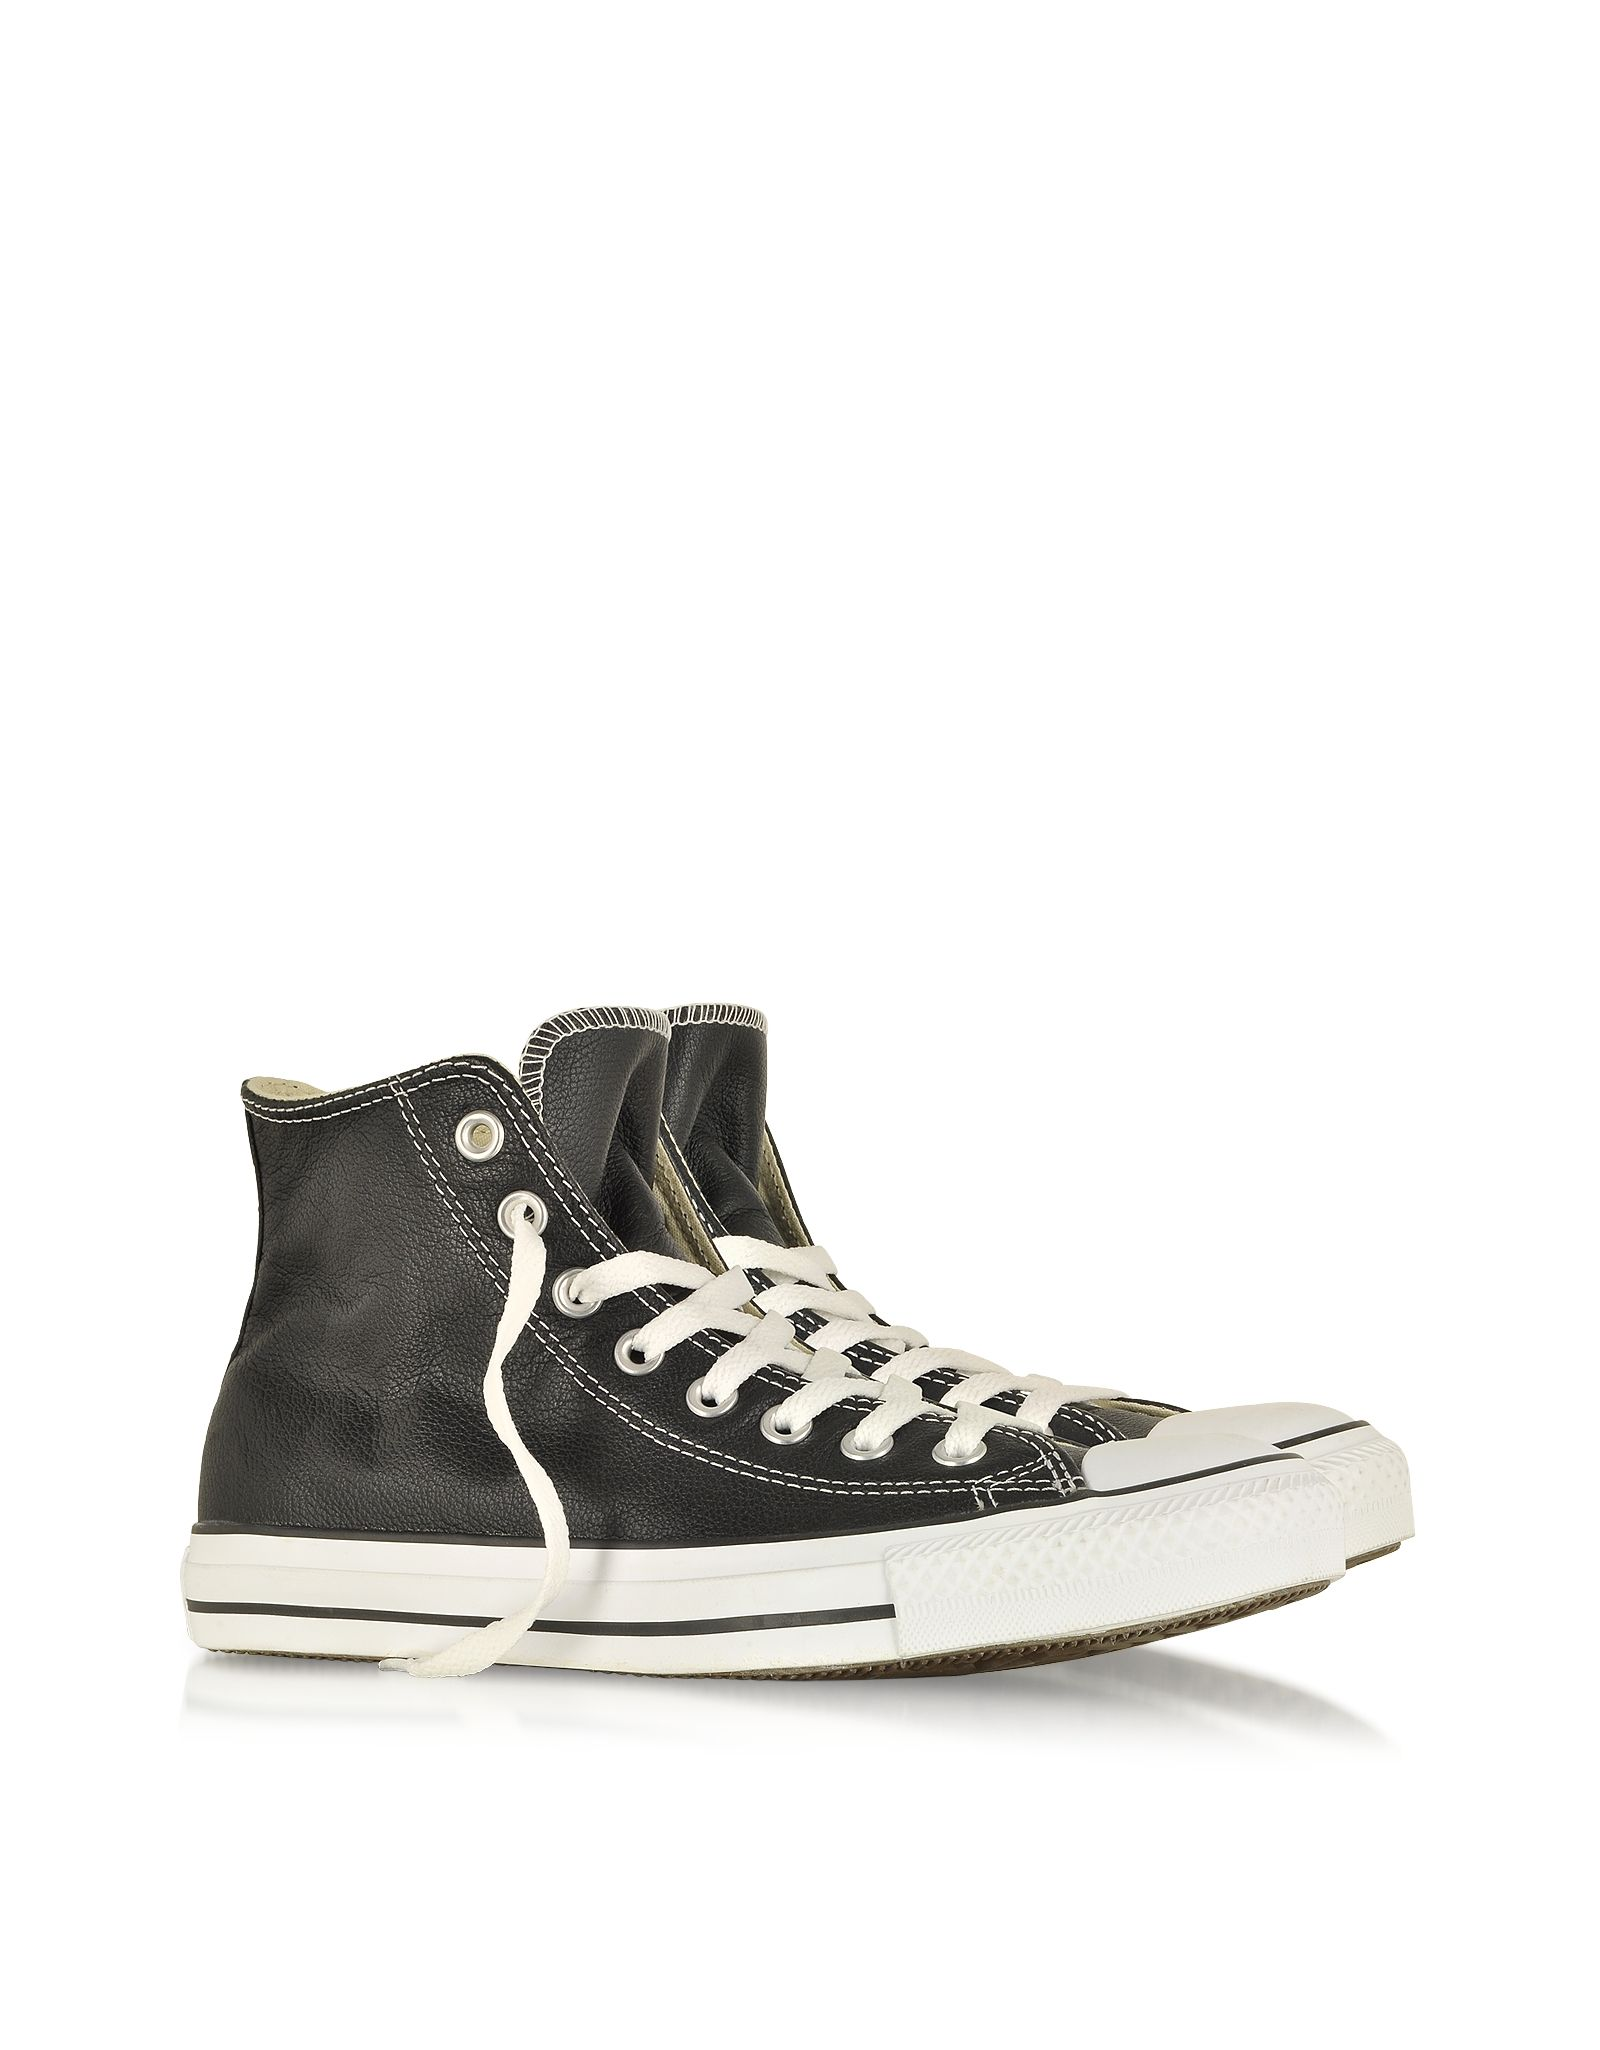 9b7179c5c982 Converse Limited Edition Chuck Taylor Leather Black Sneaker 3.5 (5.5 WOMENS  US